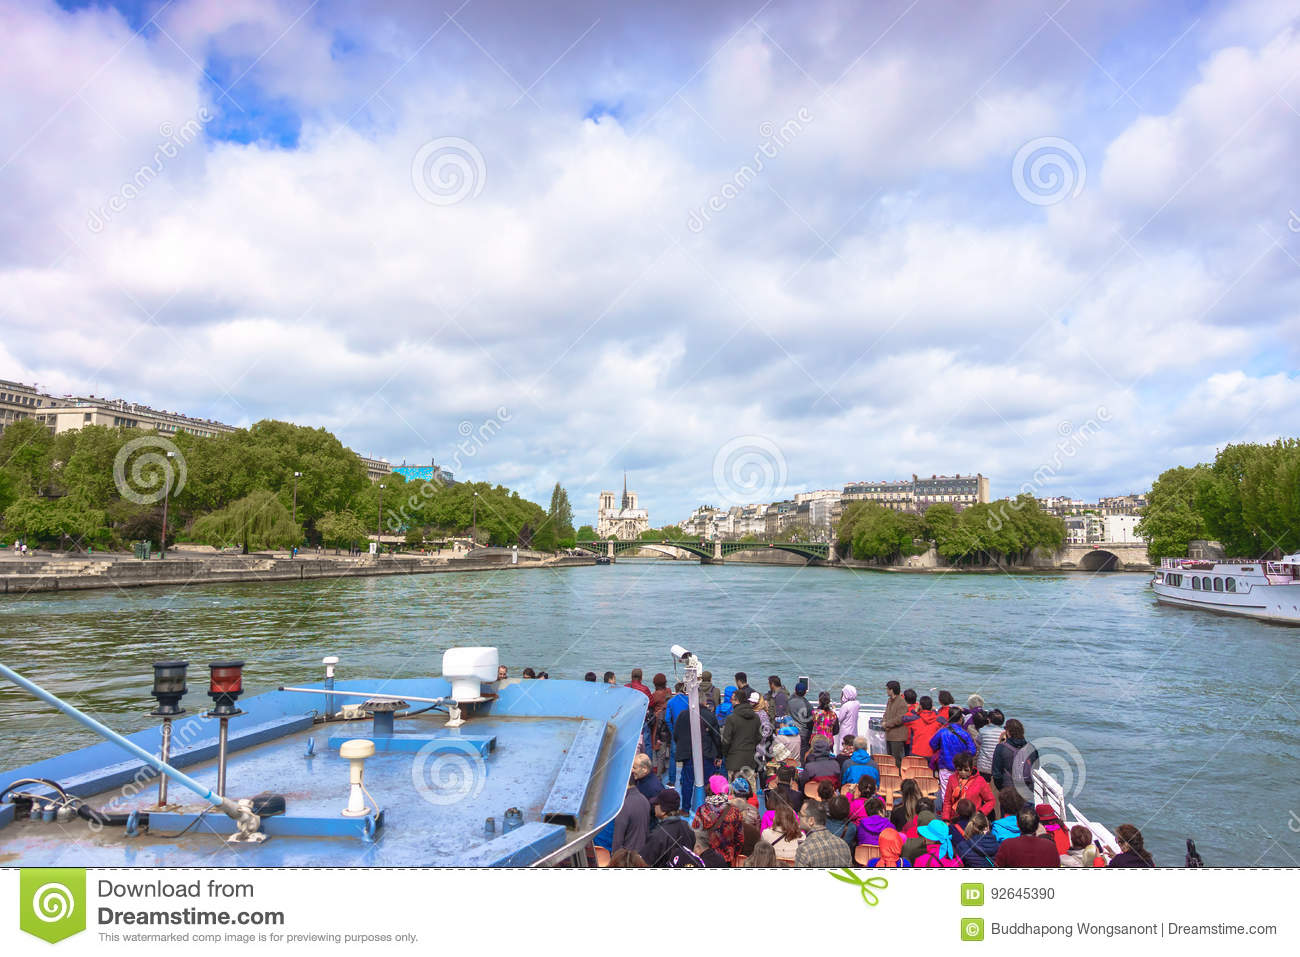 Paris, France - May 1, 2017: Tourists are cruising on the Seine